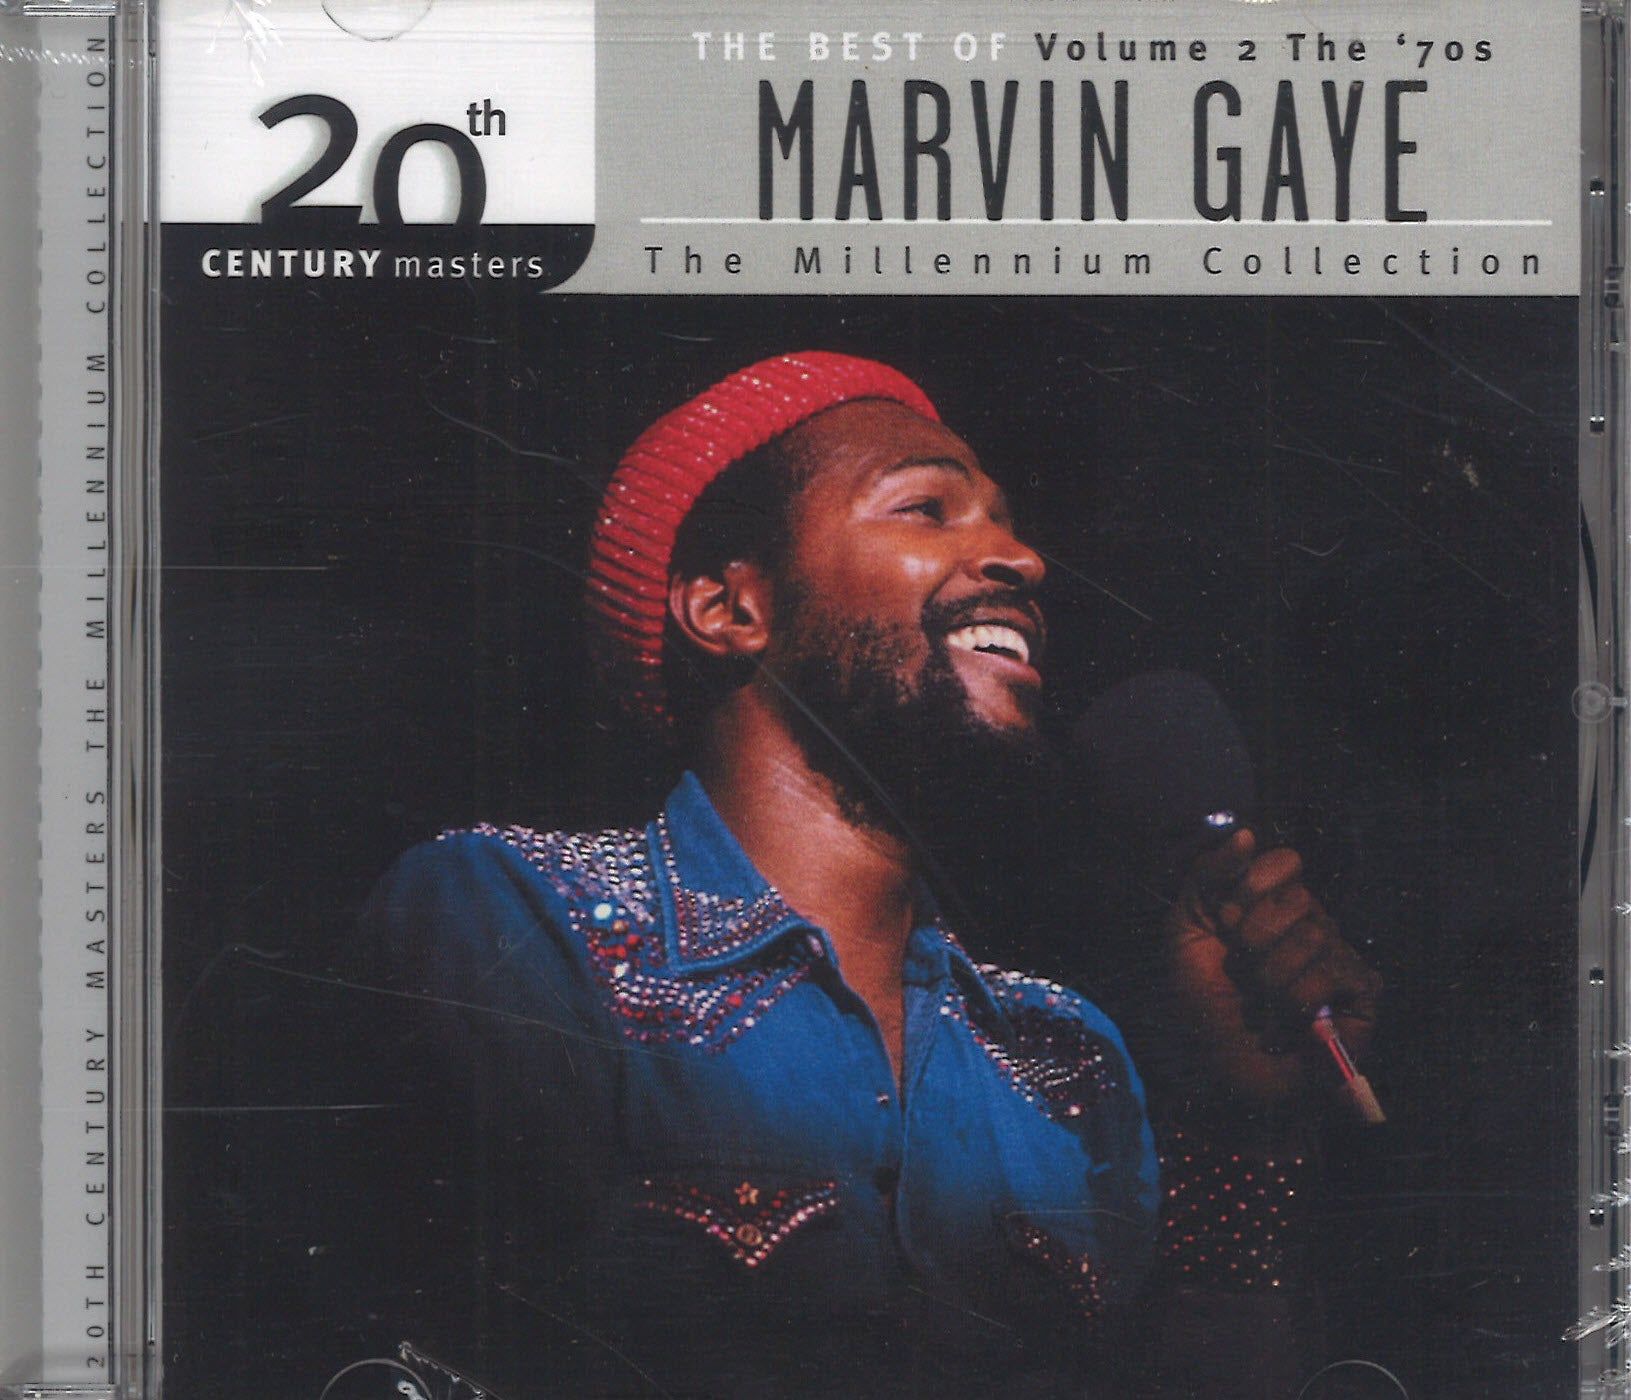 Marvin Gaye The Millennium Collection Volume 2